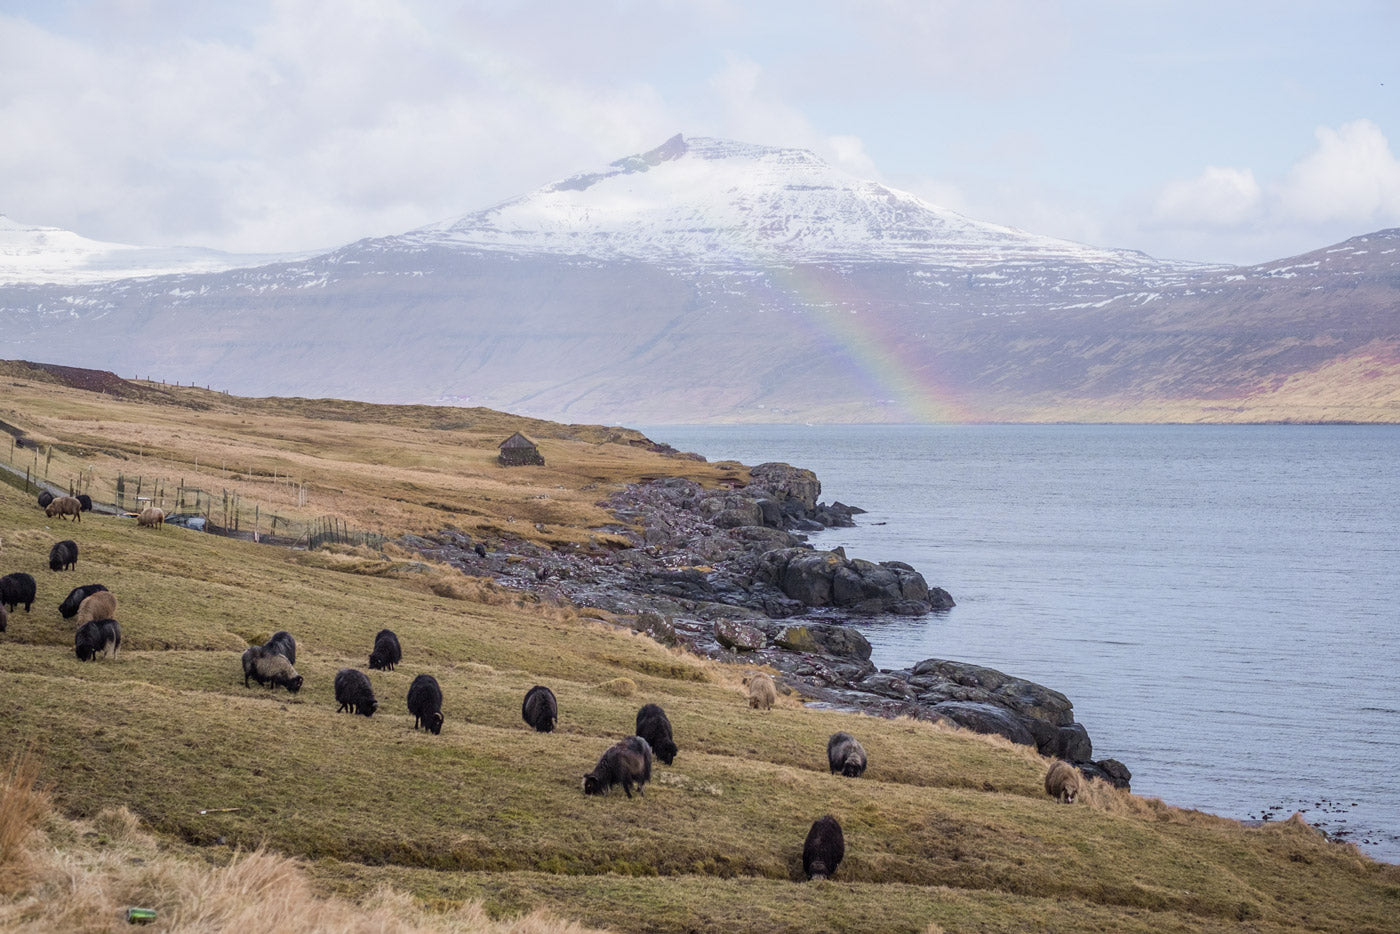 Faroe landscape speckled with sheep